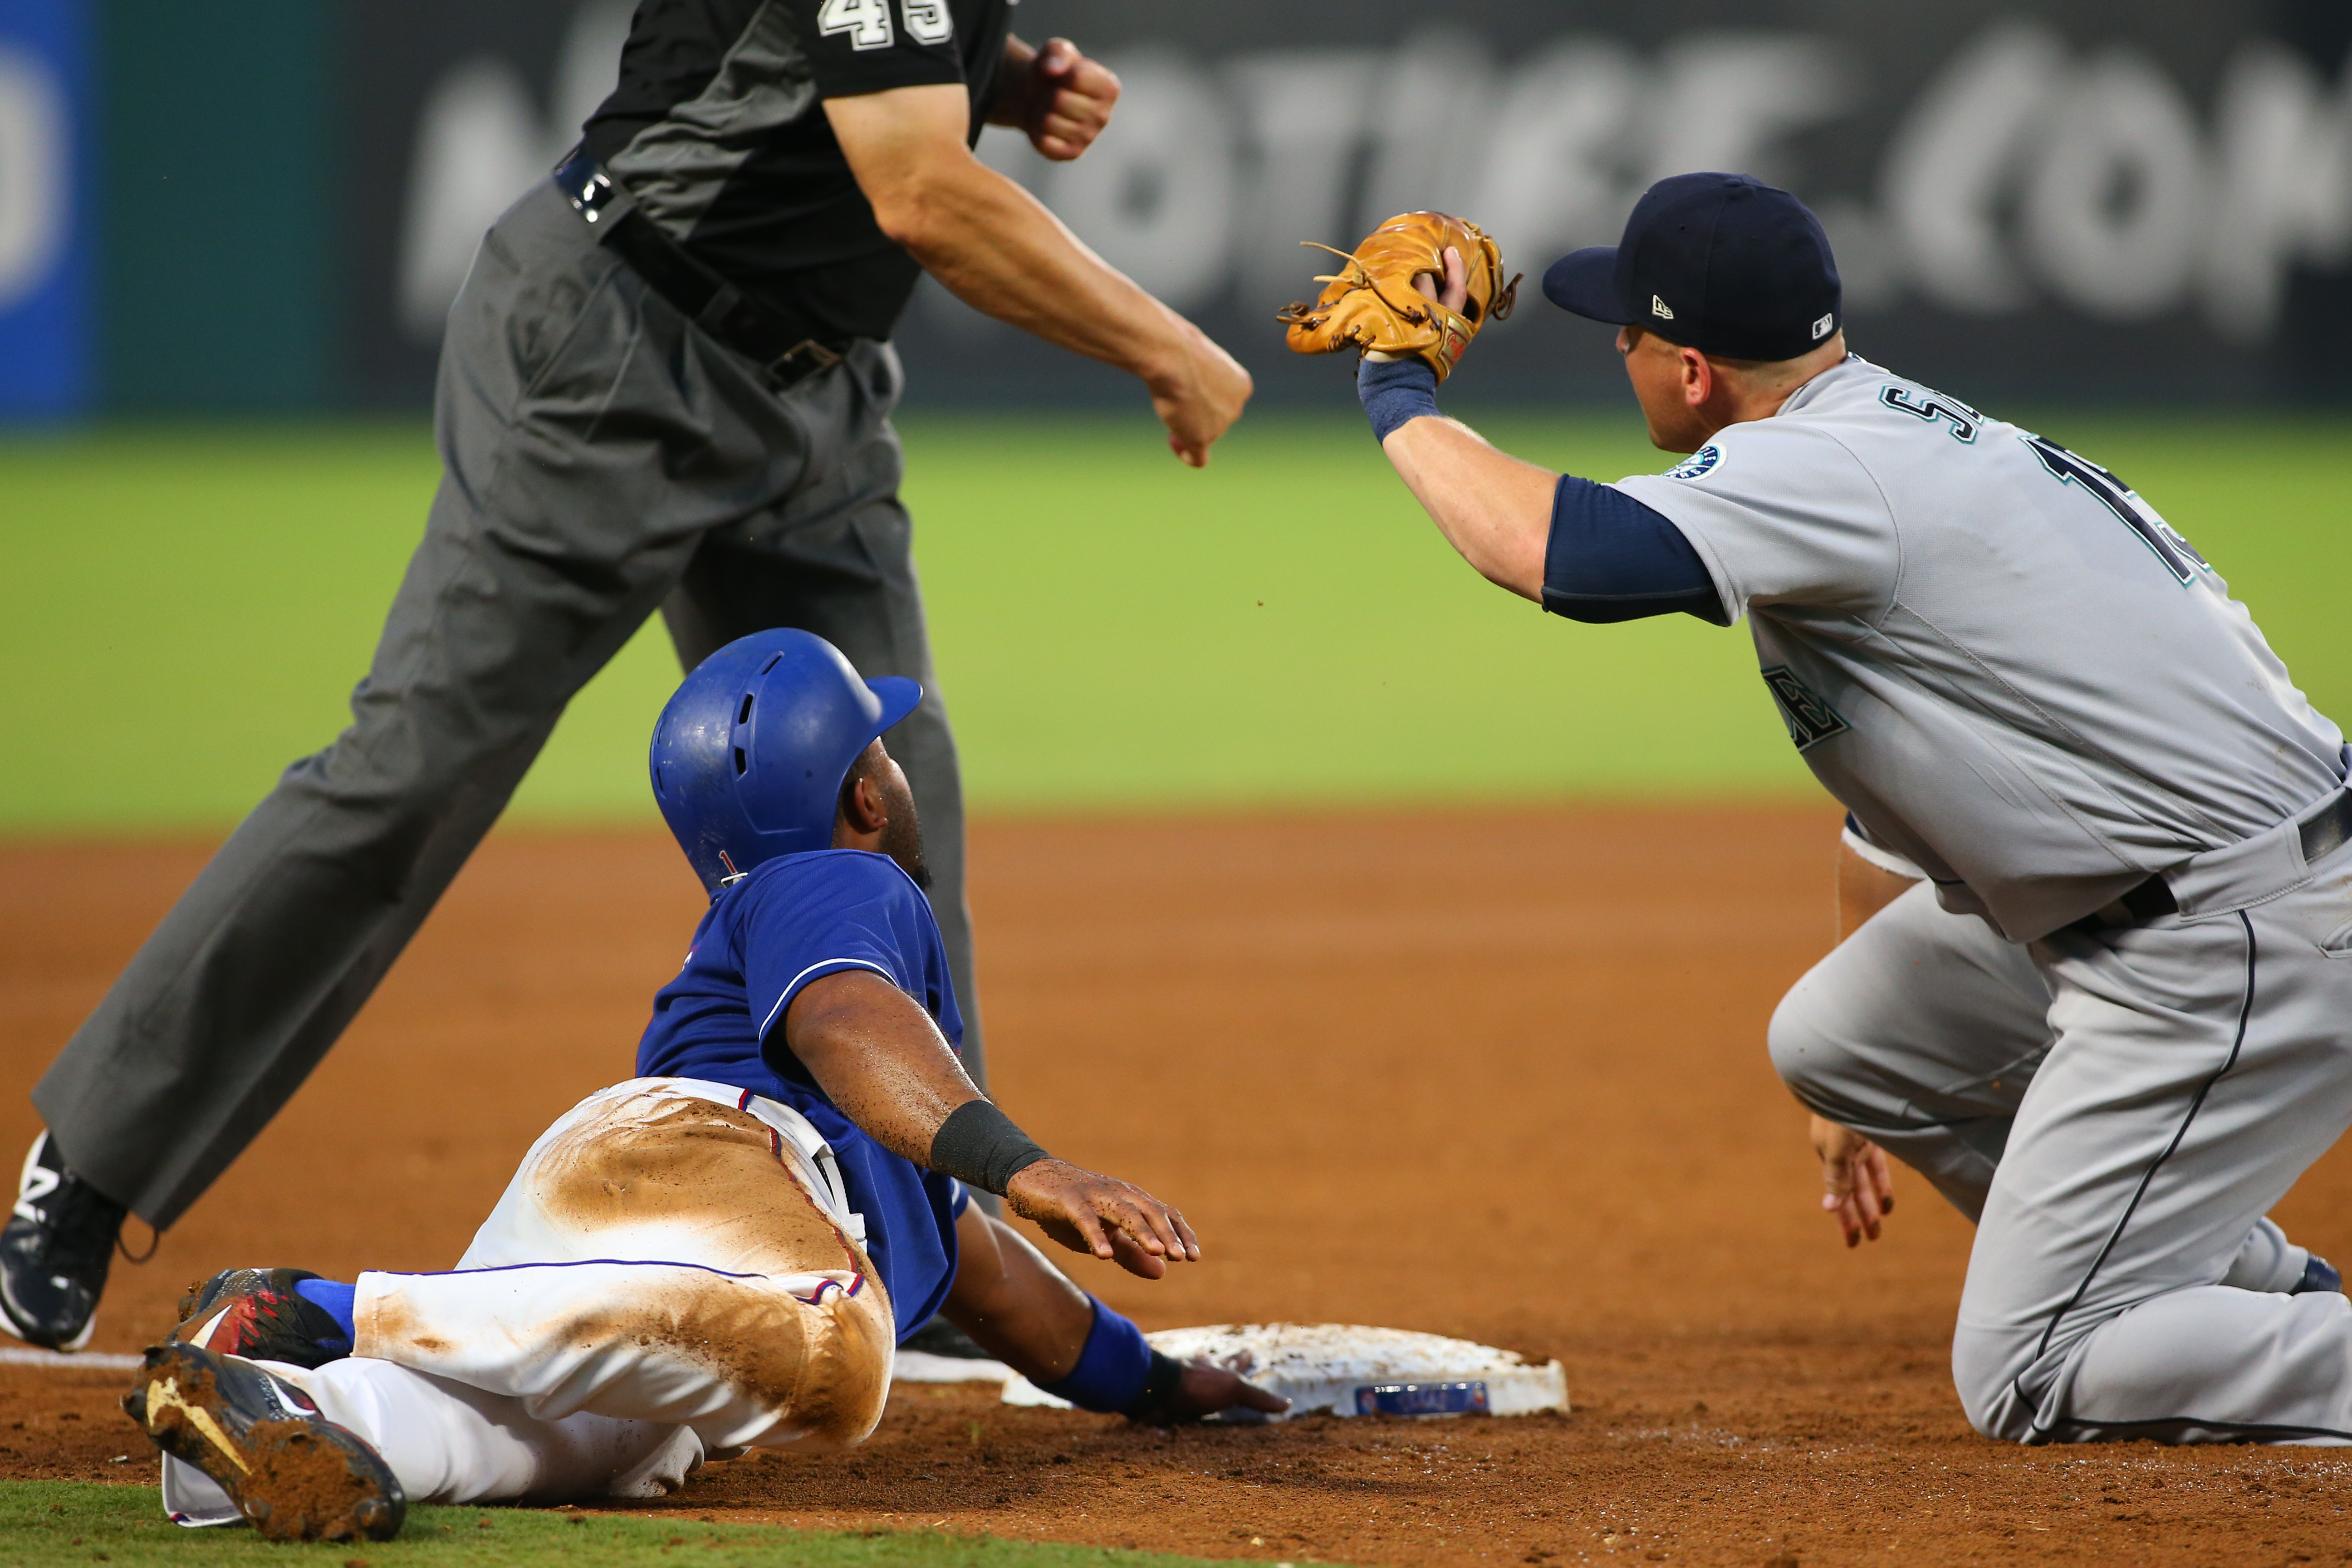 Mariners back at .500 after loss to Royals